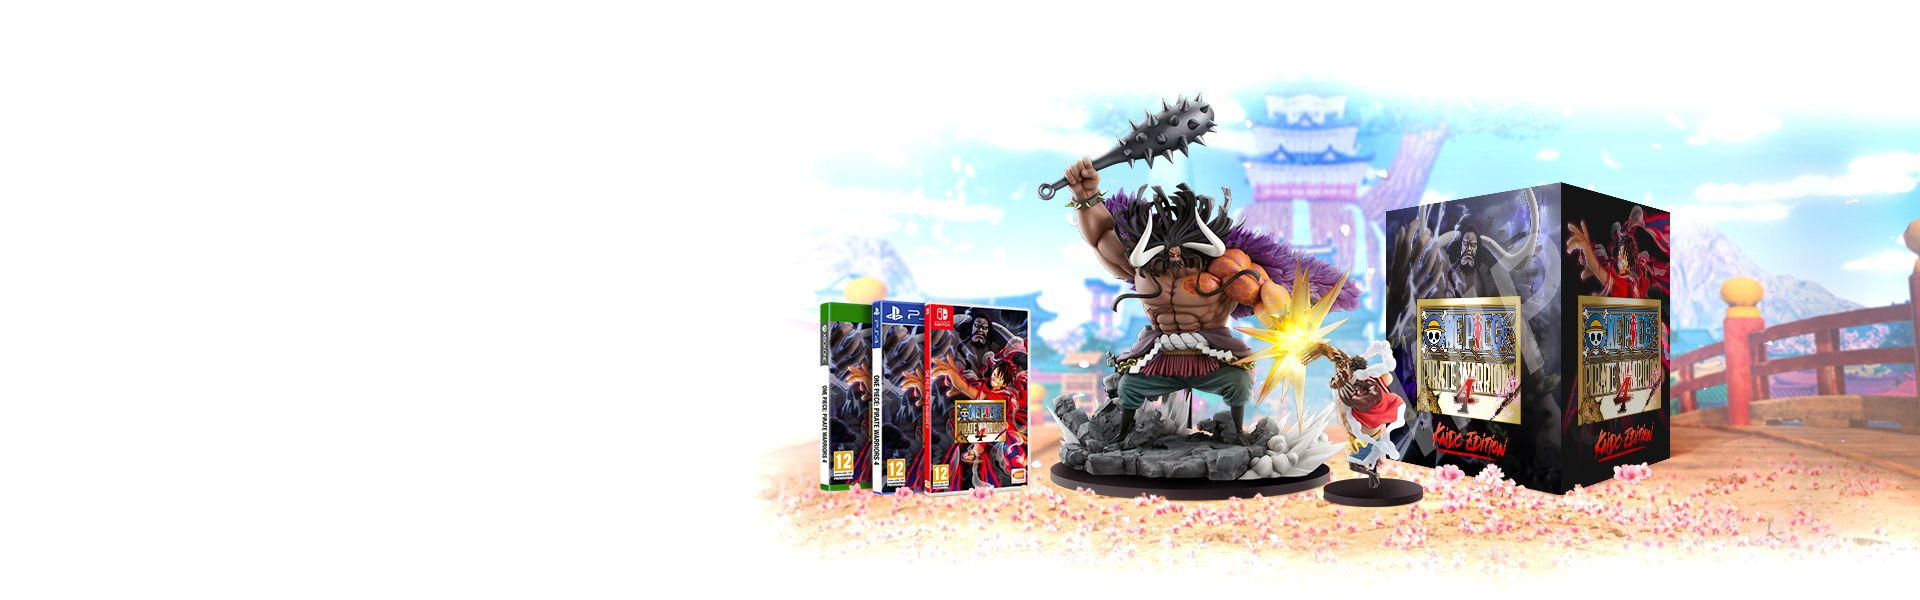 ONE PIECE: PIRATE WARRIORS 4 - Édition Collector